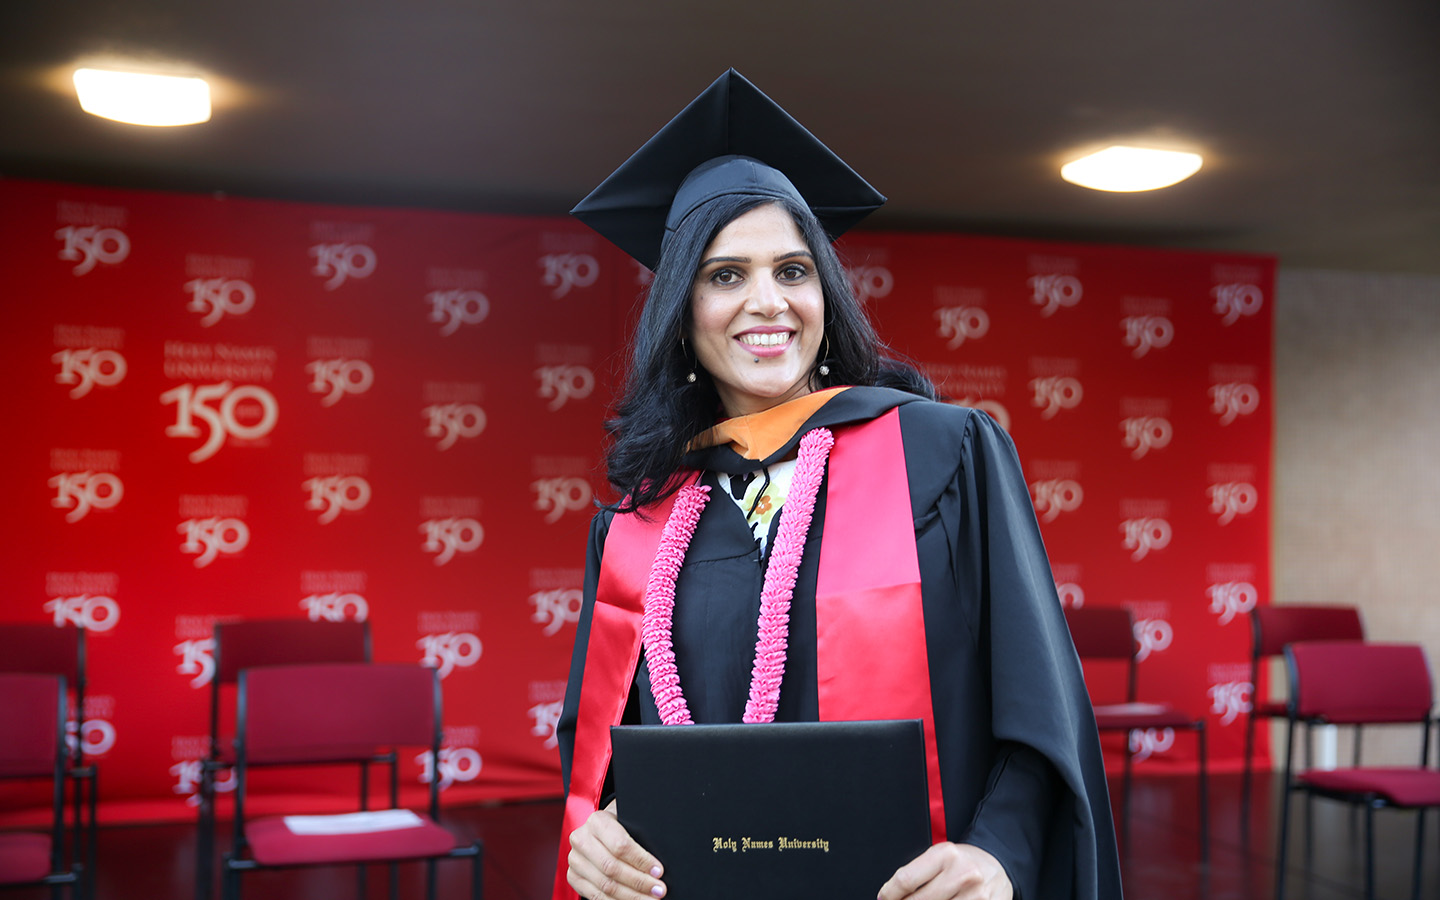 HNU Student posing with their degree at commencement ceremony